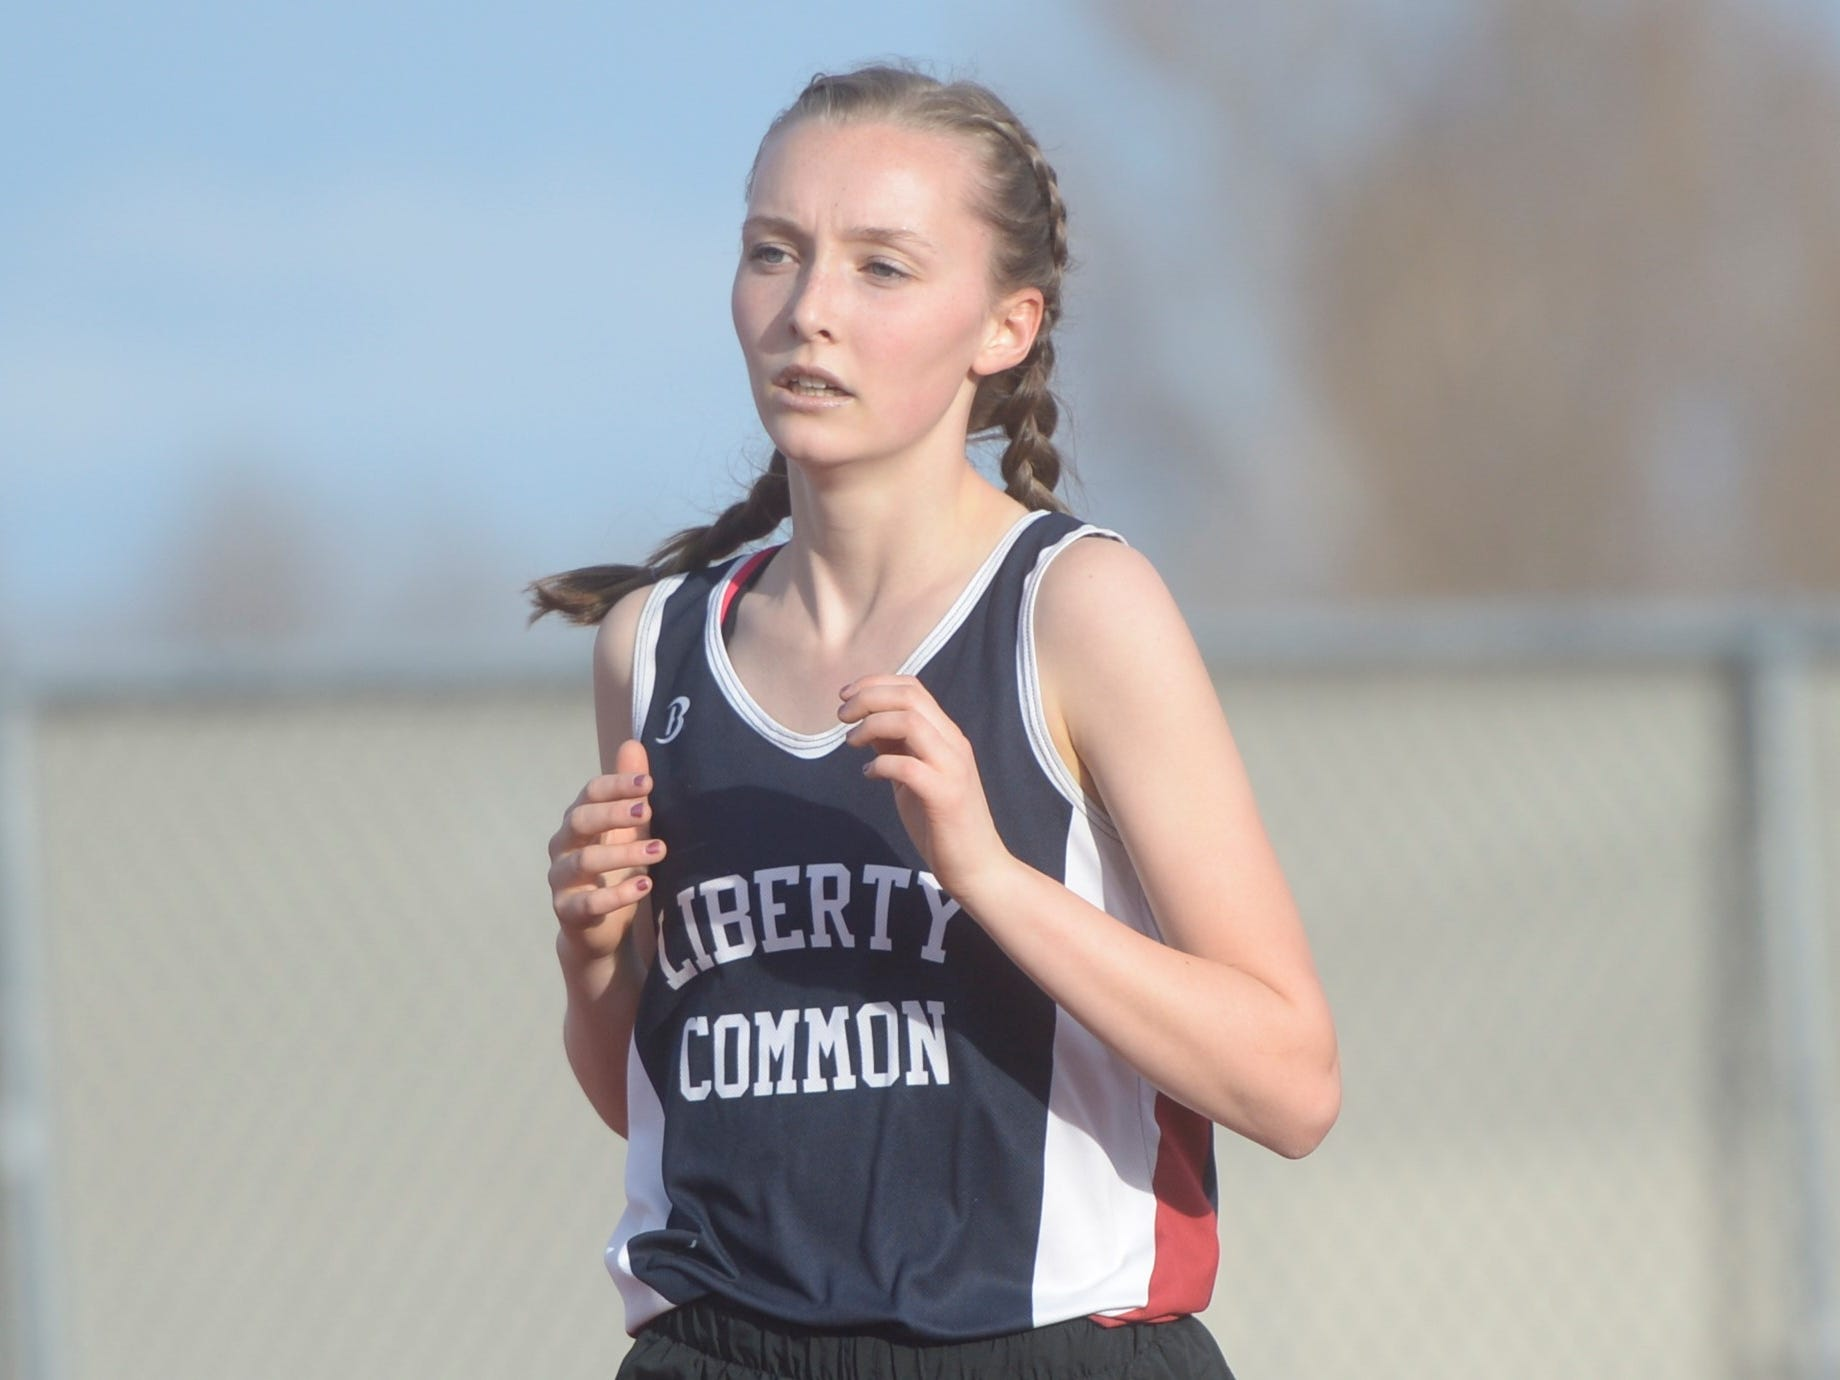 Liberty Common's Josie Doman competes in the 3,200 run at the Fort Collins city meet at French Field on Tuesday, April 9, 2019.